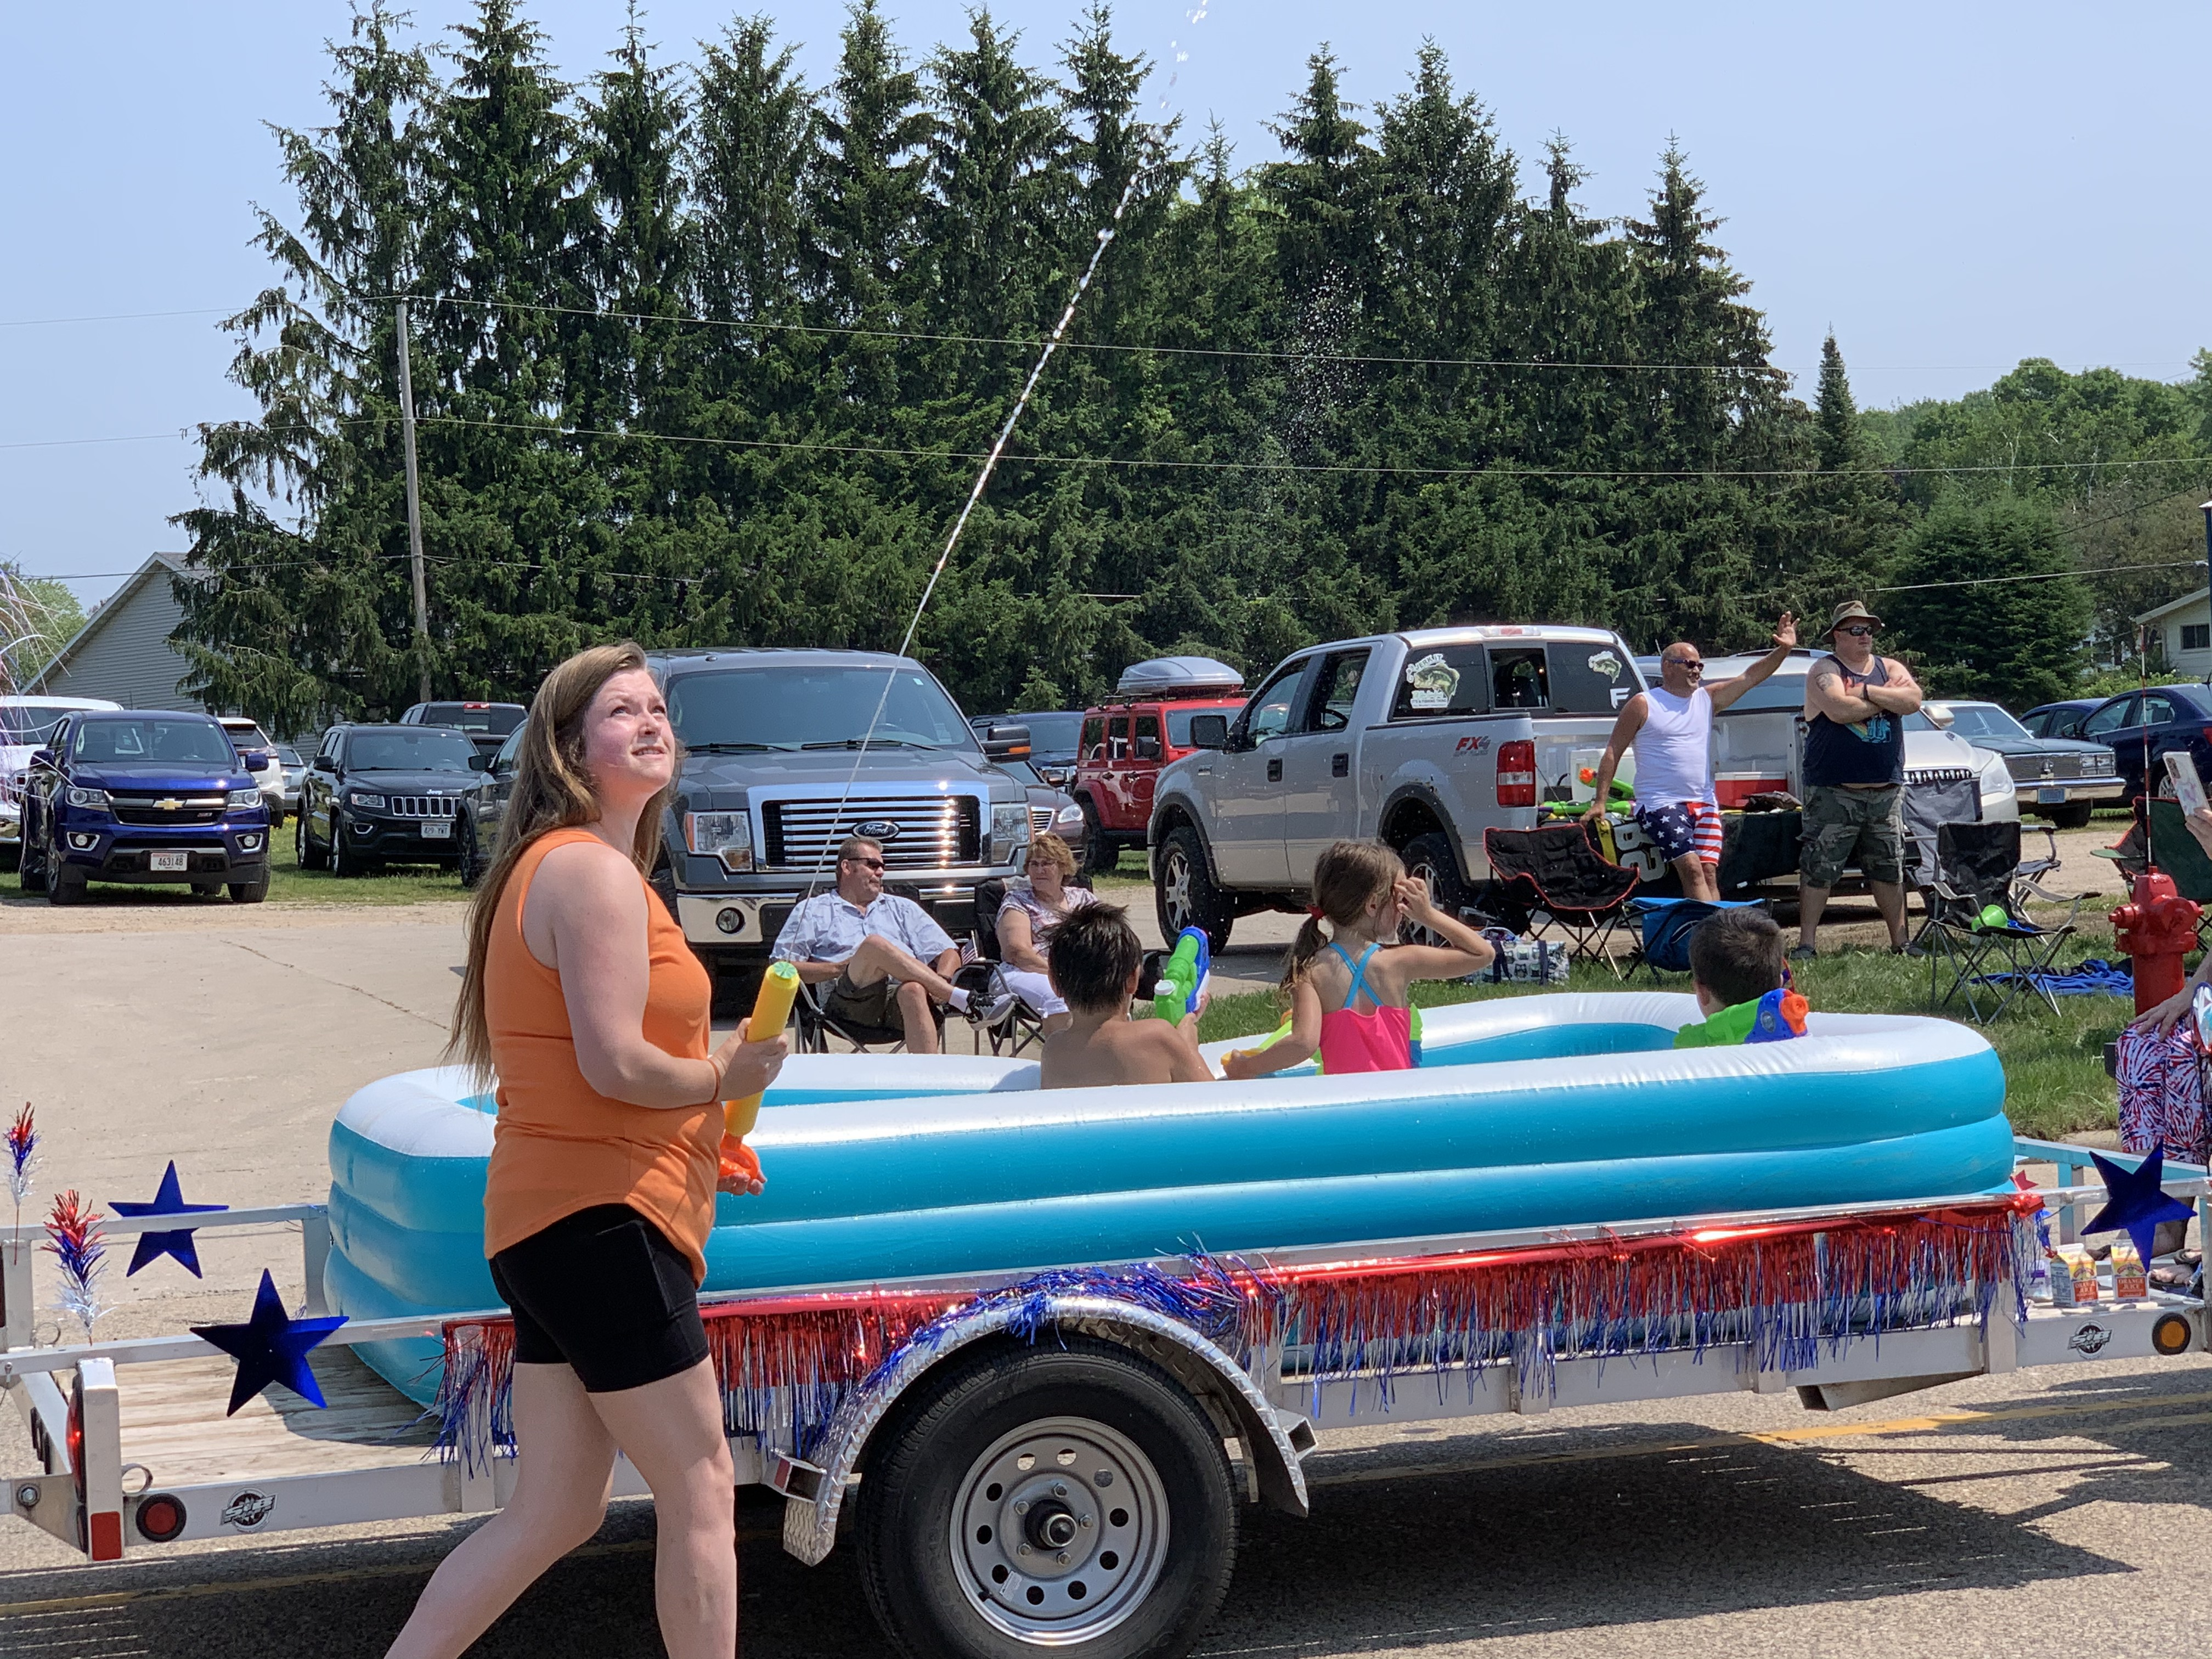 Water was squirted to cool visitors of the Fourth of July parade as temperatures reached 90 degrees in Bonduel on July 4.Luke Reimer   NEW Media